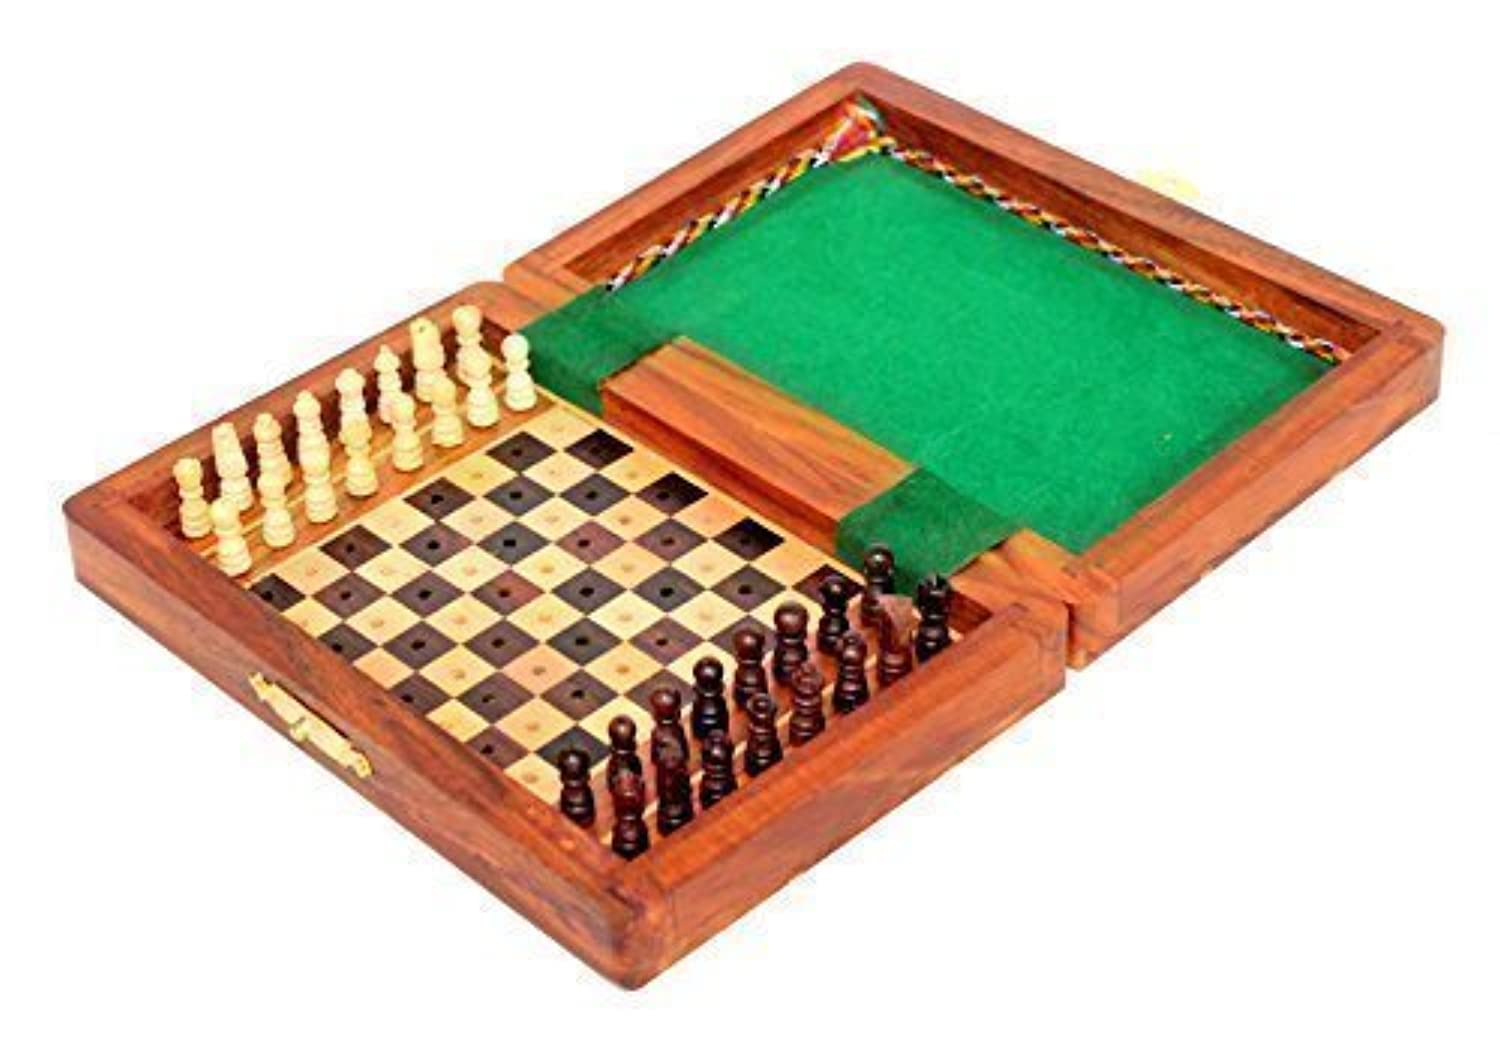 Stonkraft Collectible Folding Wooden Pegged Portable Travel Chess Game Board Set - Best Gifting options for Father's Day, Valentine Day, Birthdays - Clearing sale. Price dropped by 35% now. by StonKraft [並行輸入品]